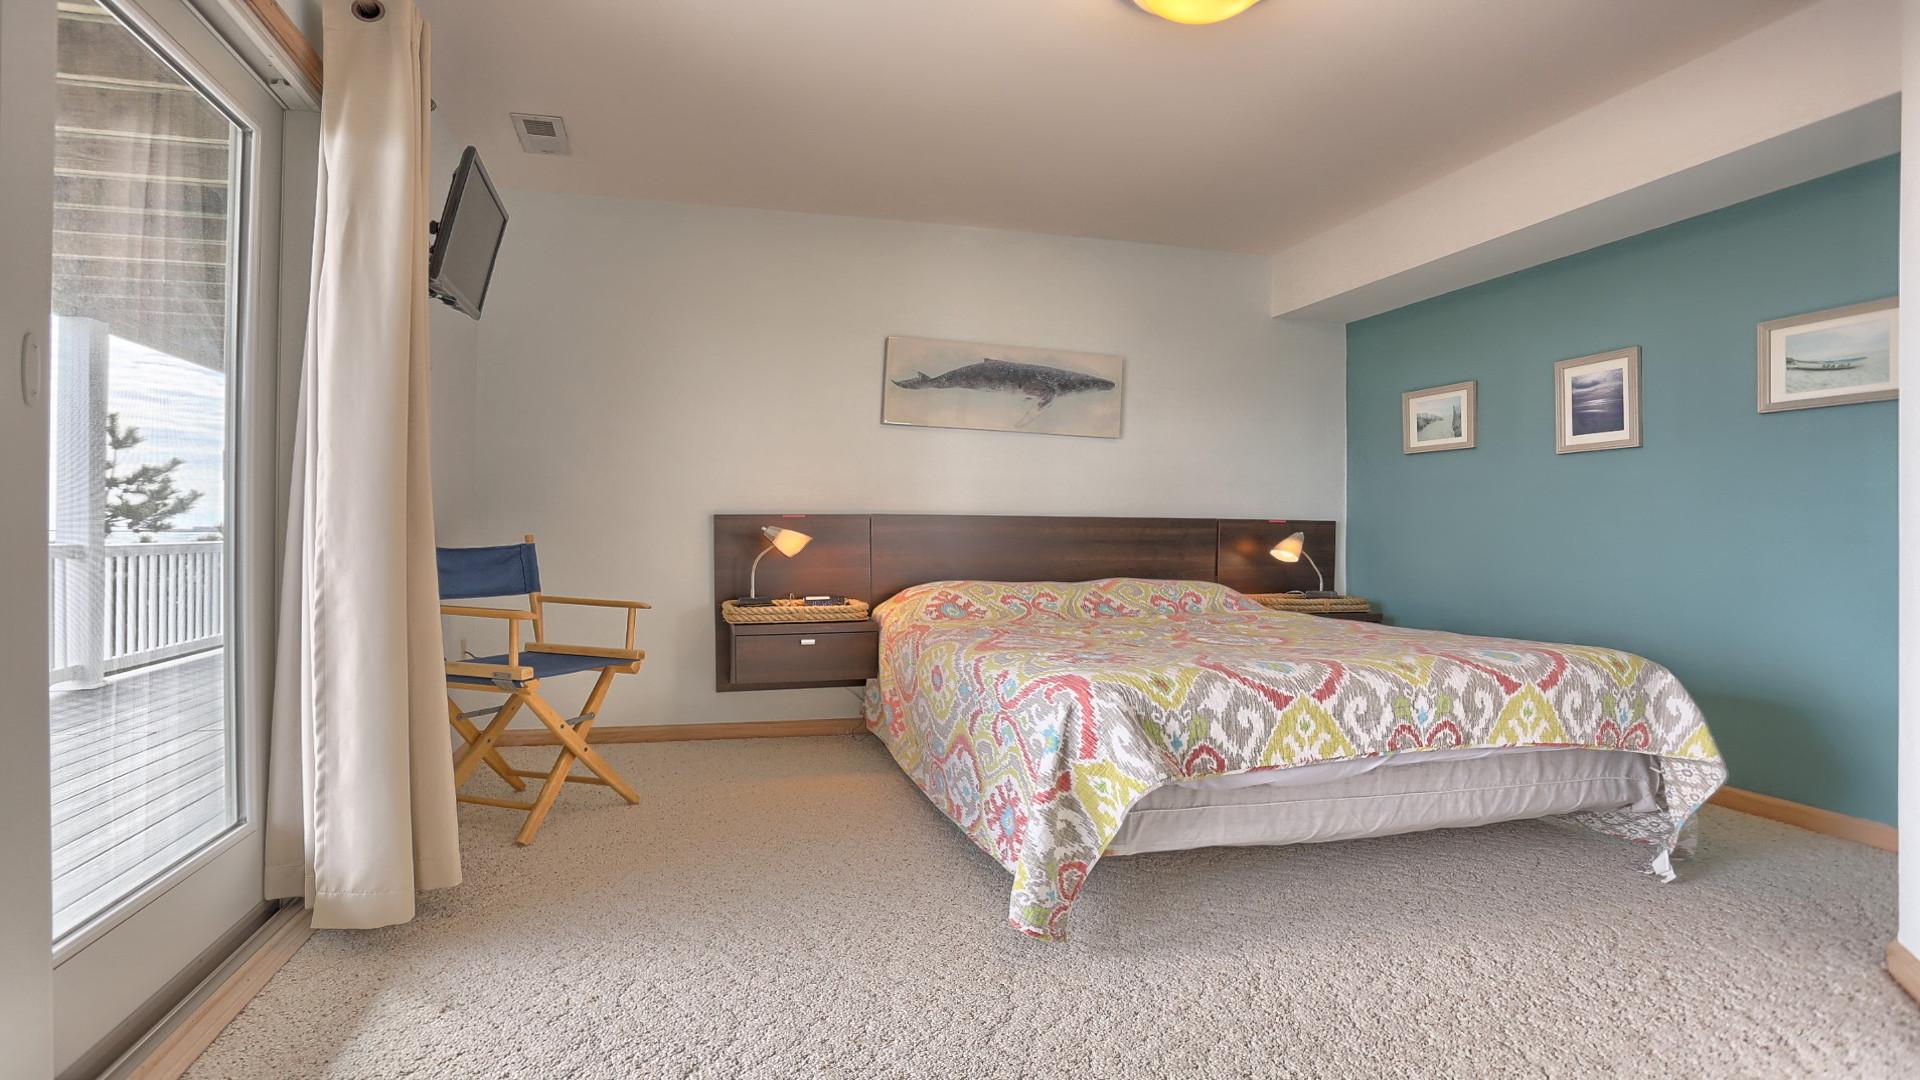 Whale Bedroom